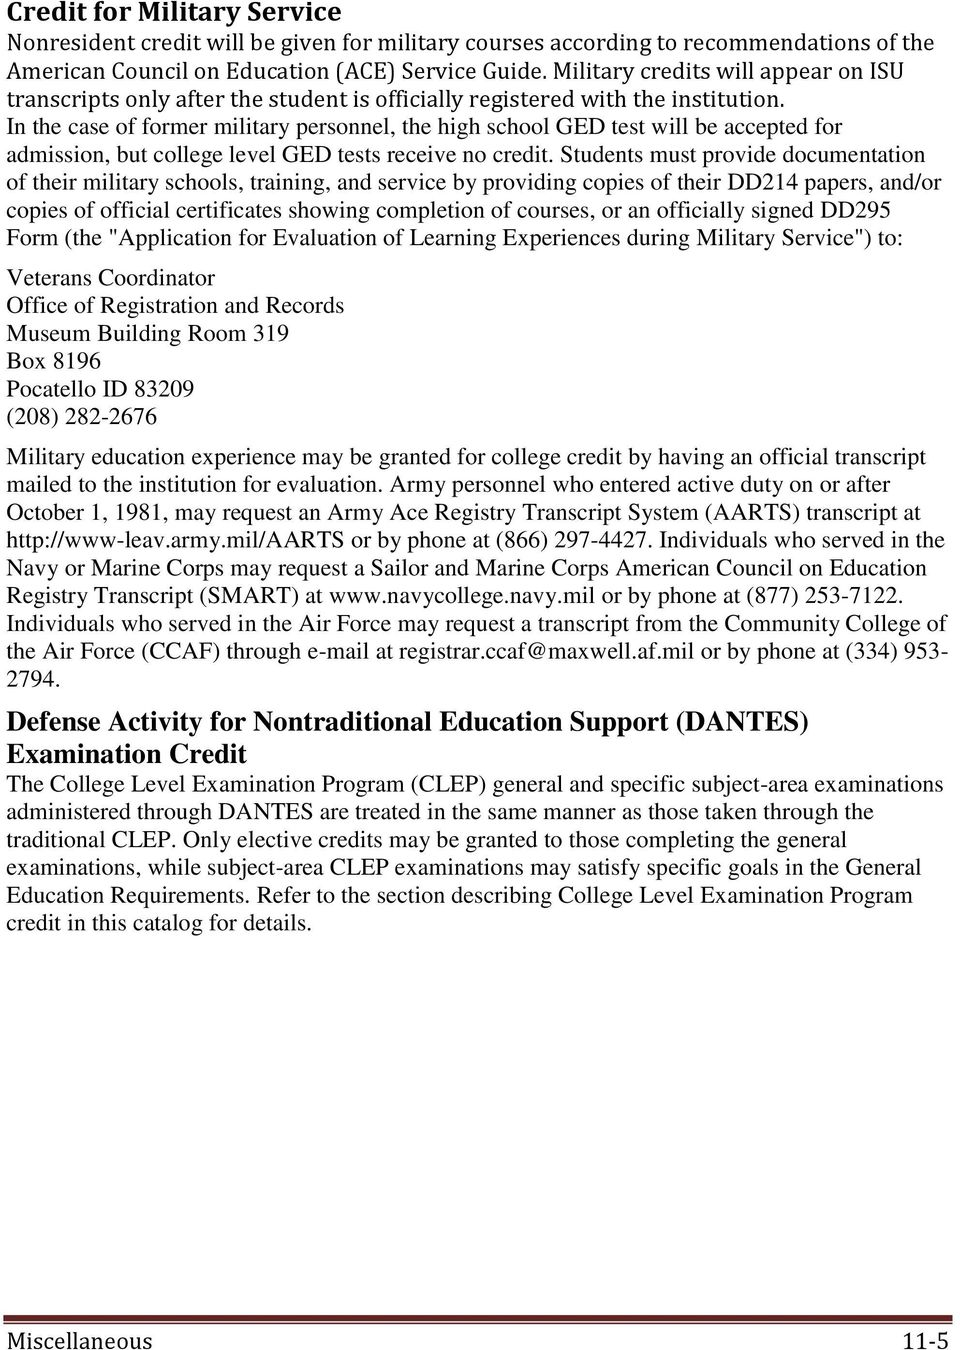 In the case of former military personnel, the high school GED test will be accepted for admission, but college level GED tests receive no credit.